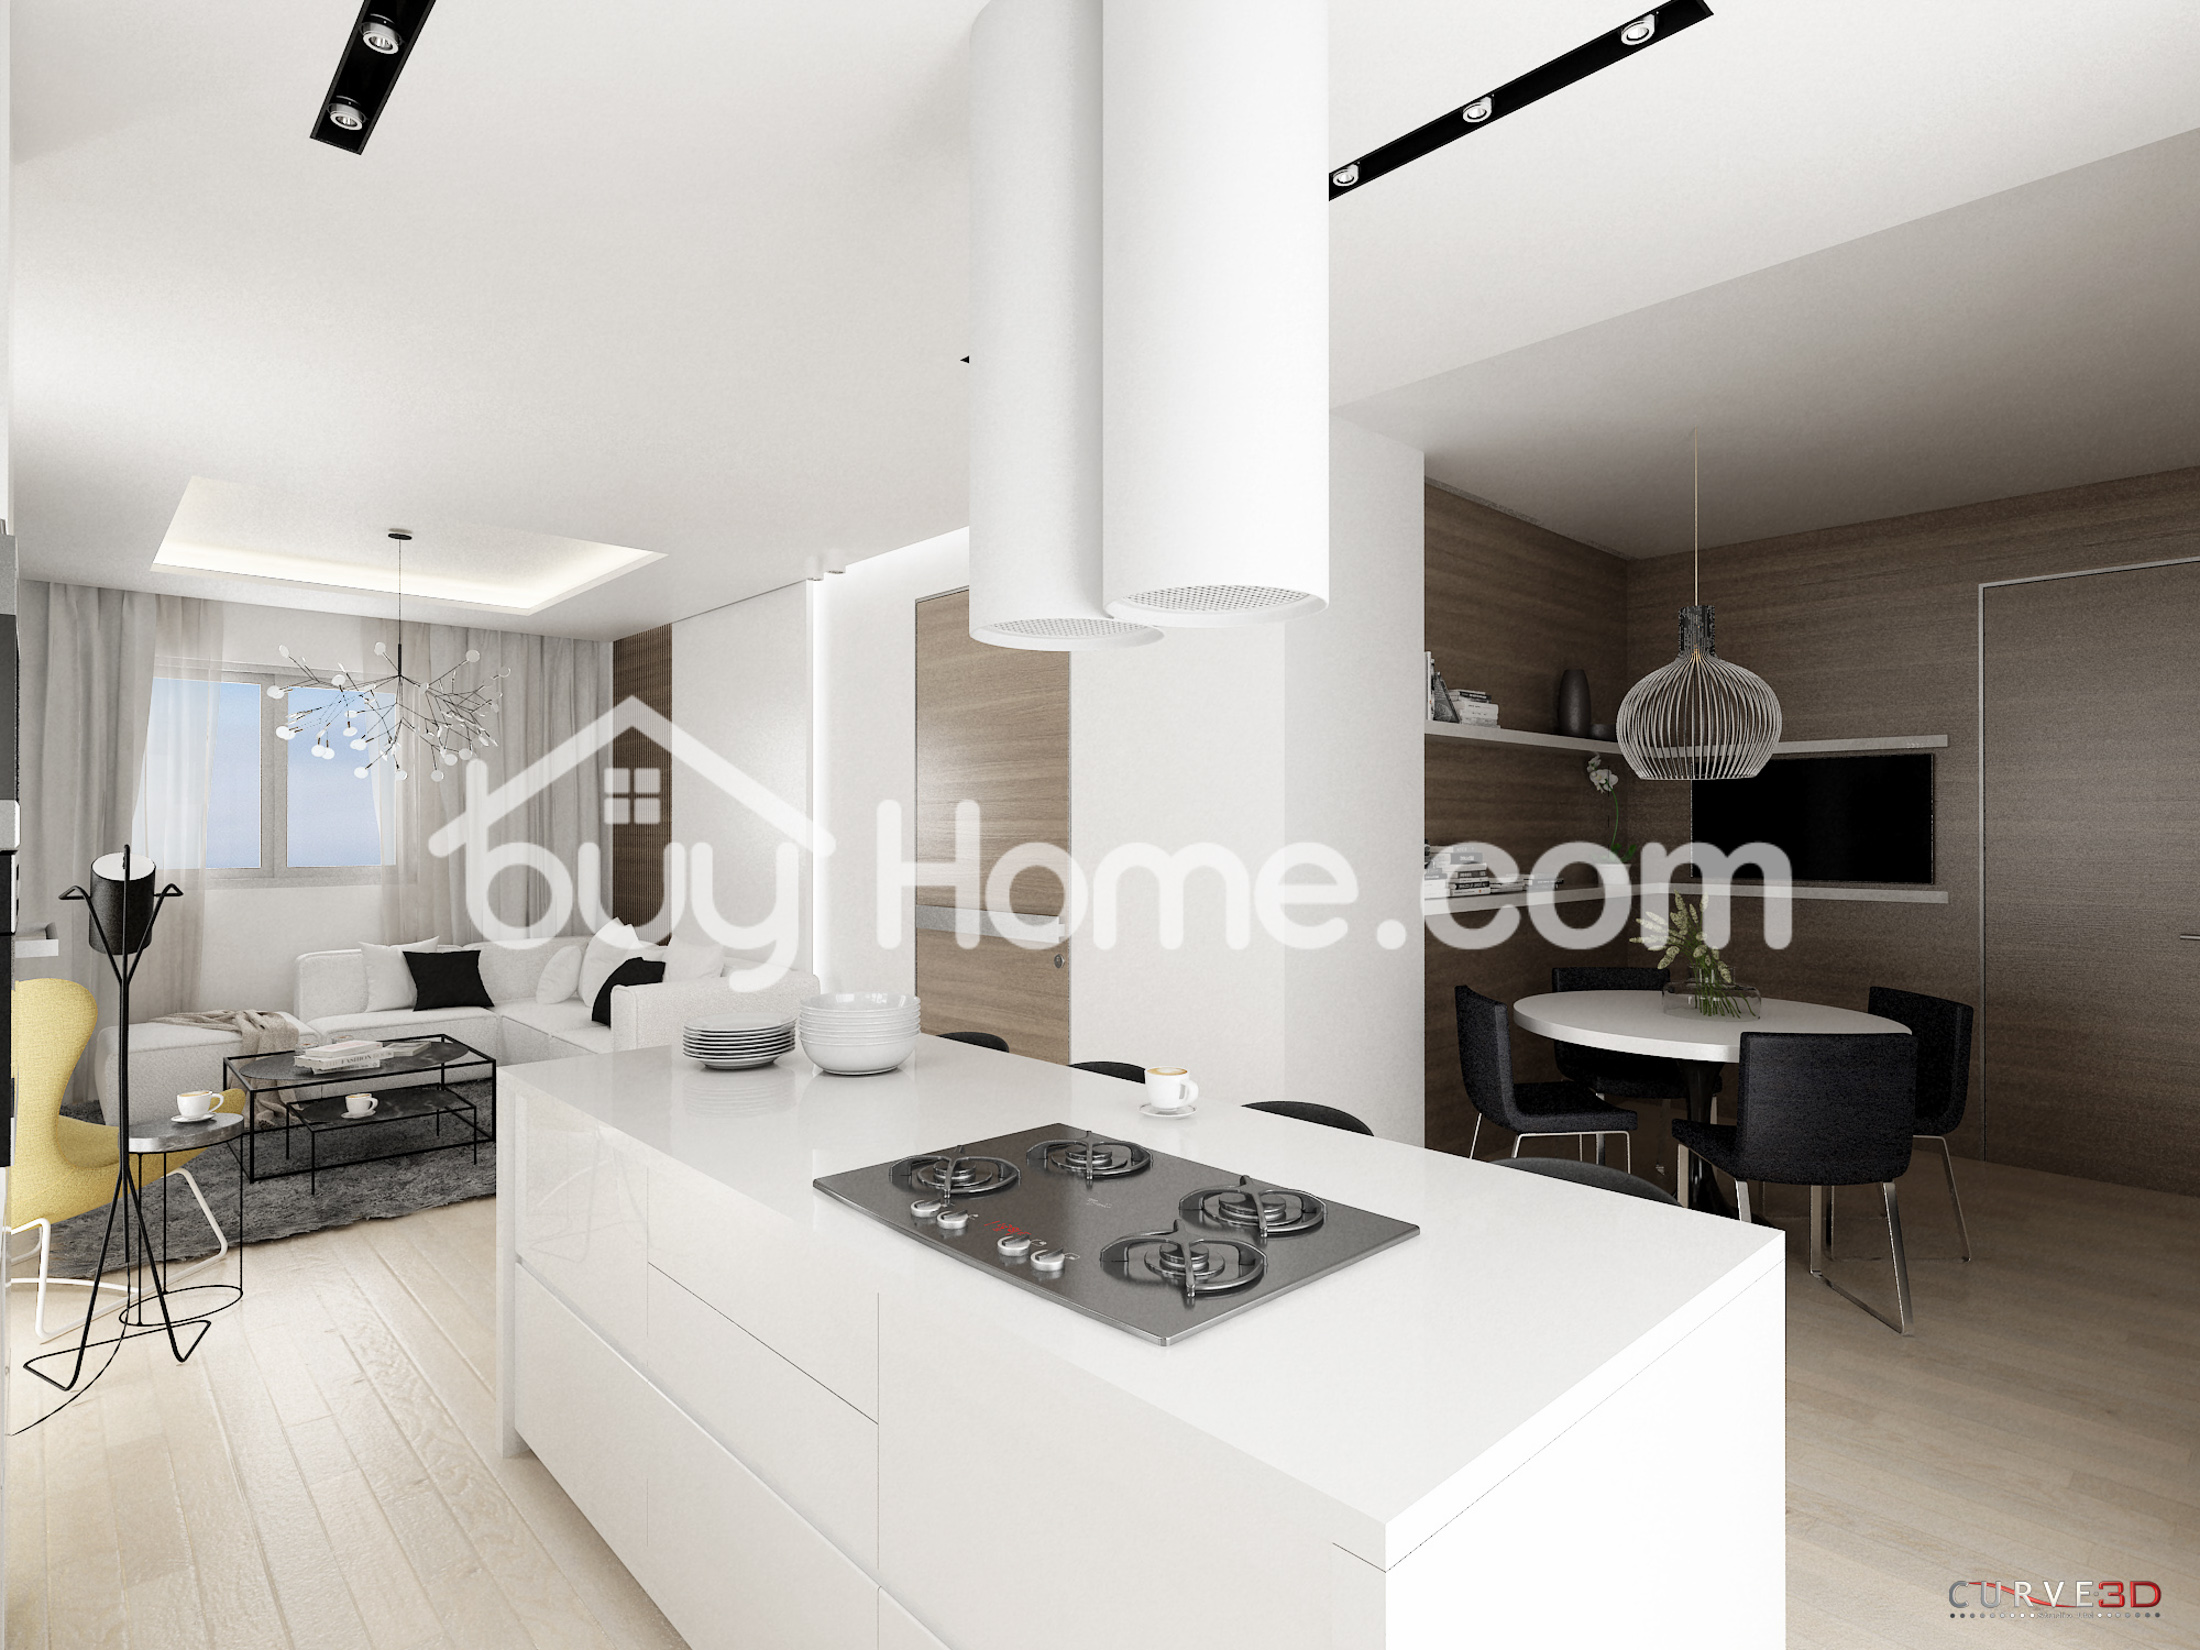 2 Bedroom New Apartment | BuyHome